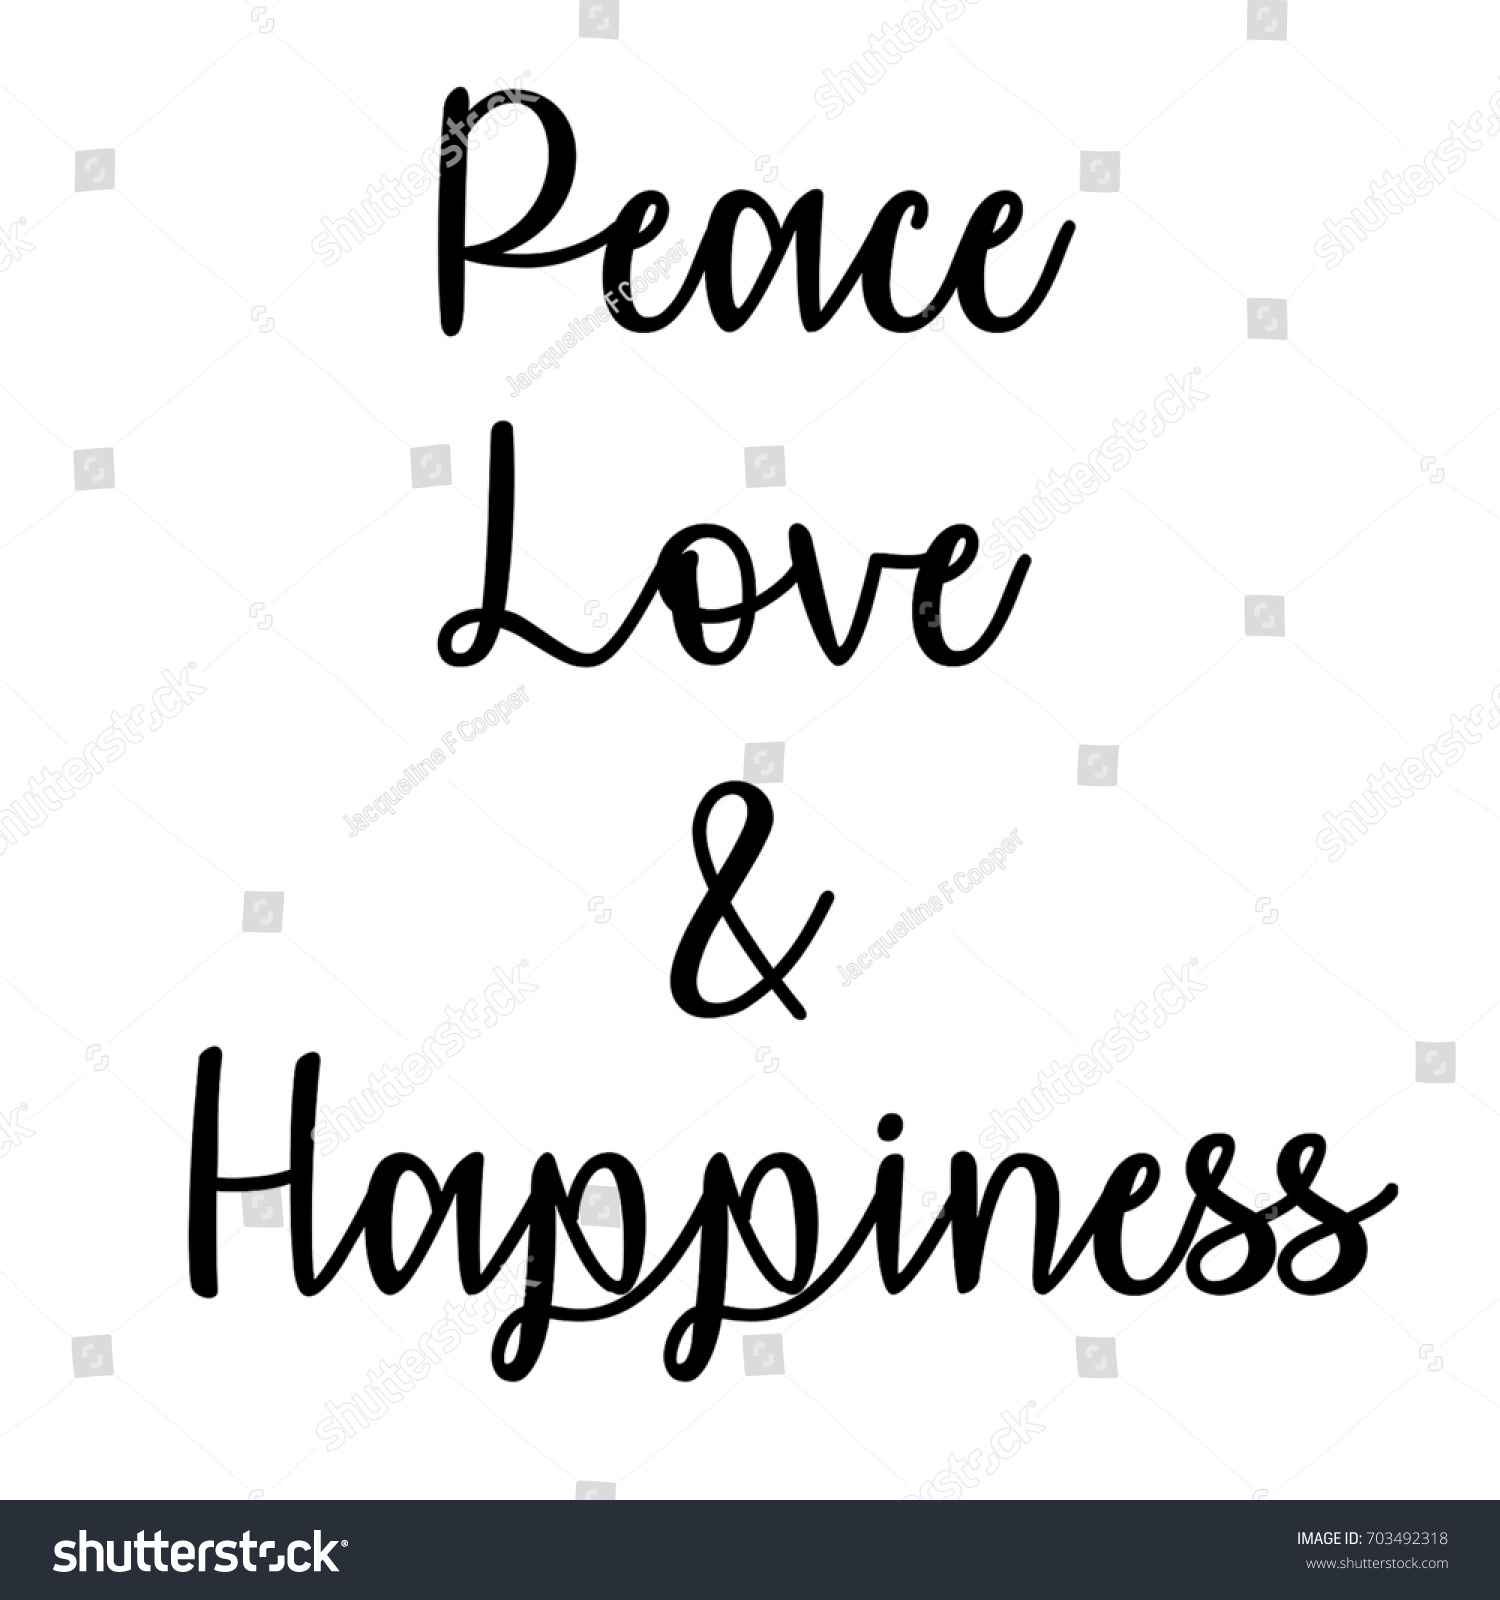 Peace Love And Happiness Quotes Inspirational Mindful Quote Peace Love  Happiness Stock